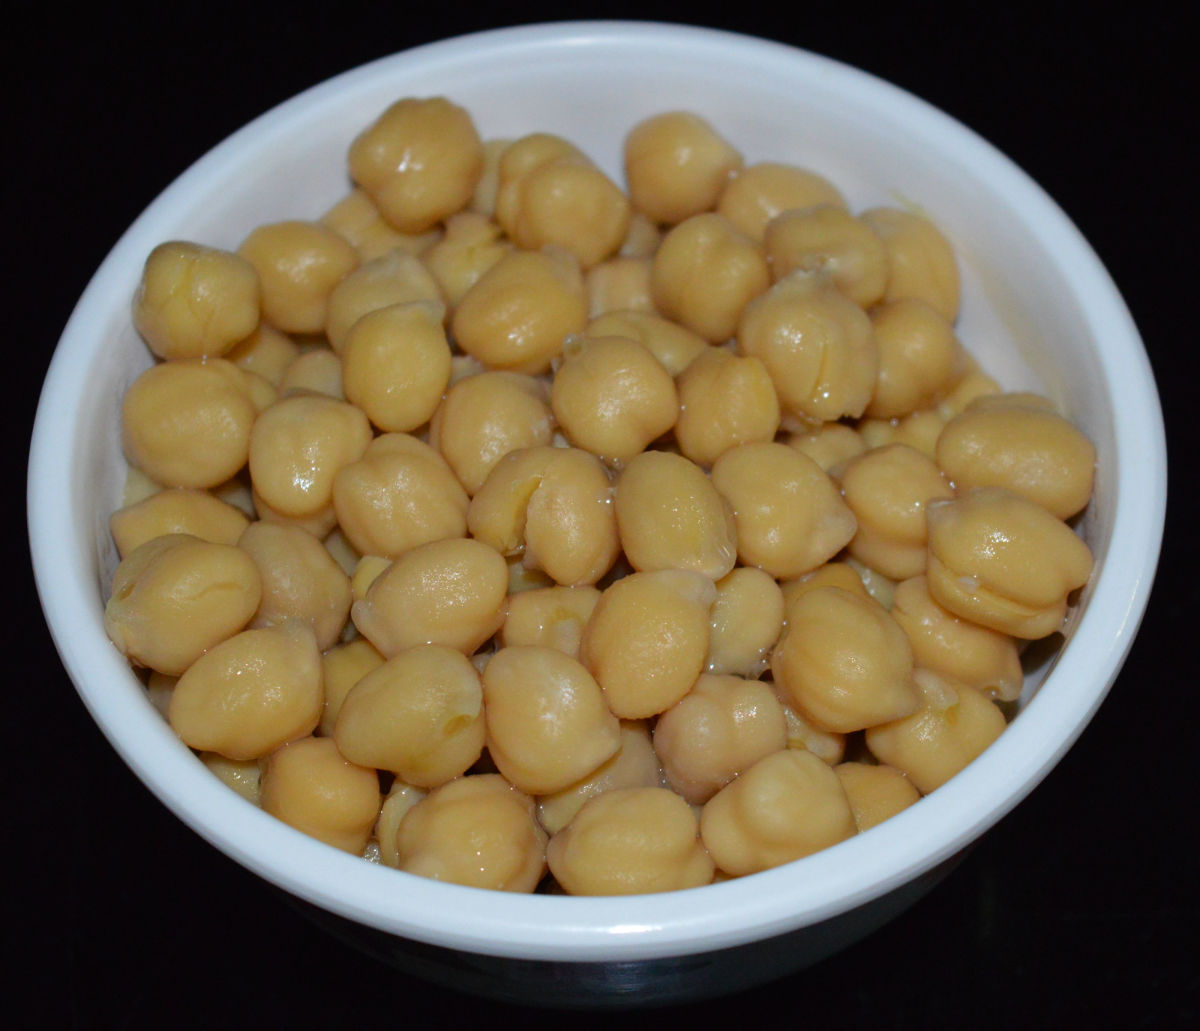 Cooked chickpeas(garbanzo beans)